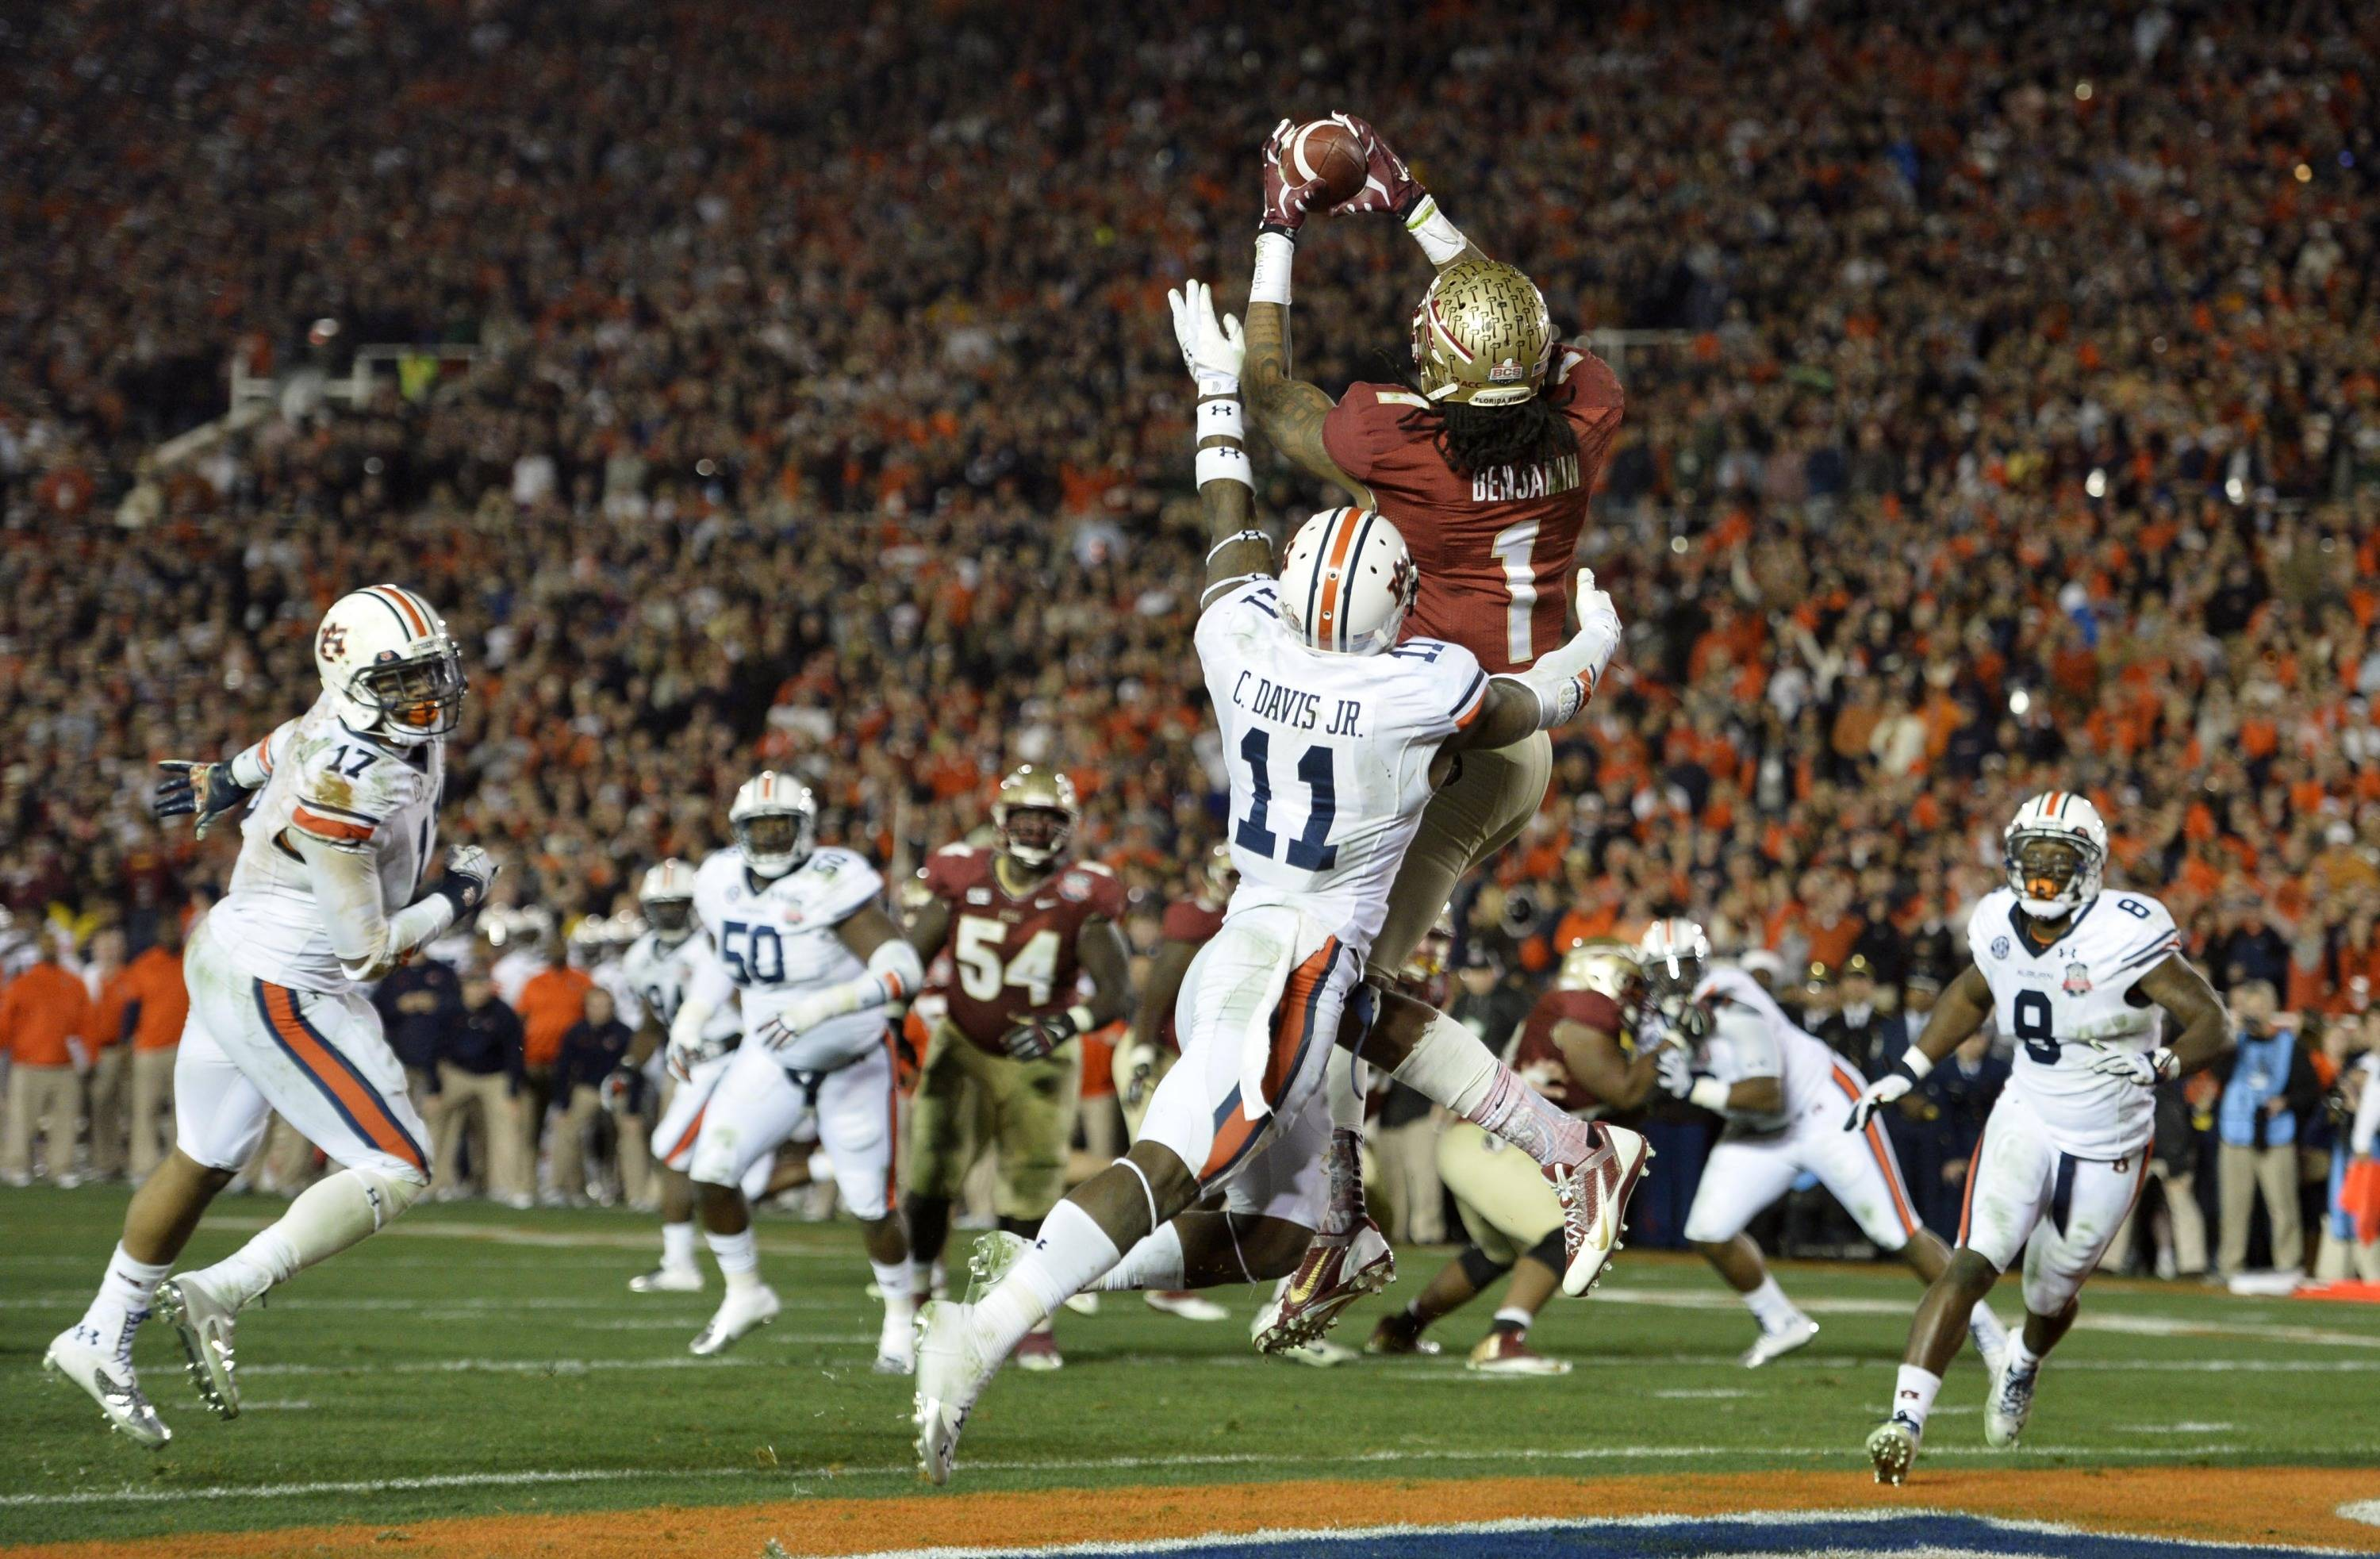 Jan 6, 2014; Pasadena, CA, USA; Florida State Seminoles wide receiver Kelvin Benjamin (1) catches a touchdown pass over Auburn Tigers cornerback Chris Davis (11) during the second half of the 2014 BCS National Championship game at the Rose Bowl.  Mandatory Credit: Robert Hanashiro-USA TODAY Sports